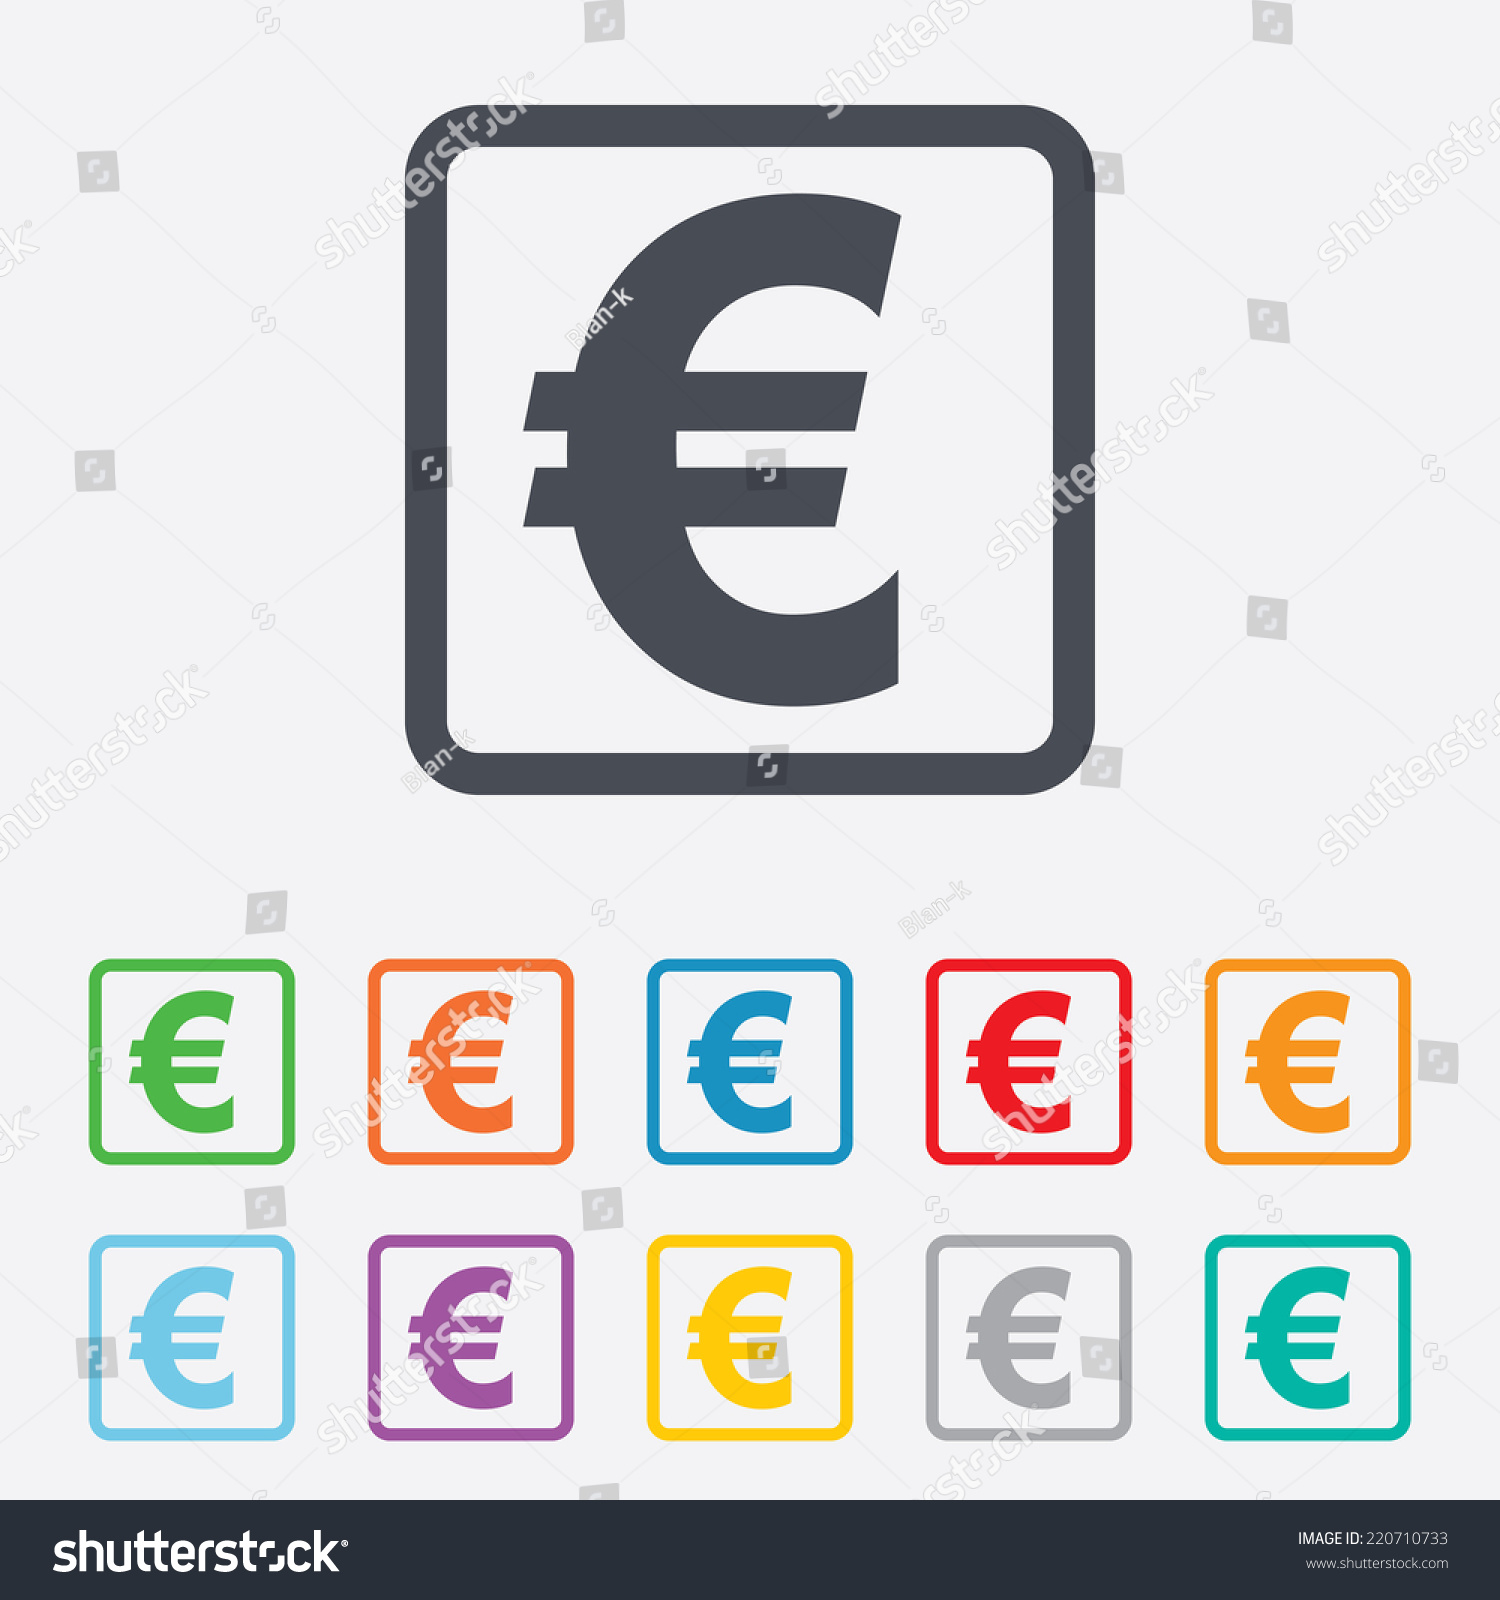 Euro sign icon eur currency symbol stock illustration 220710733 euro sign icon eur currency symbol money label round squares buttons with frame buycottarizona Gallery